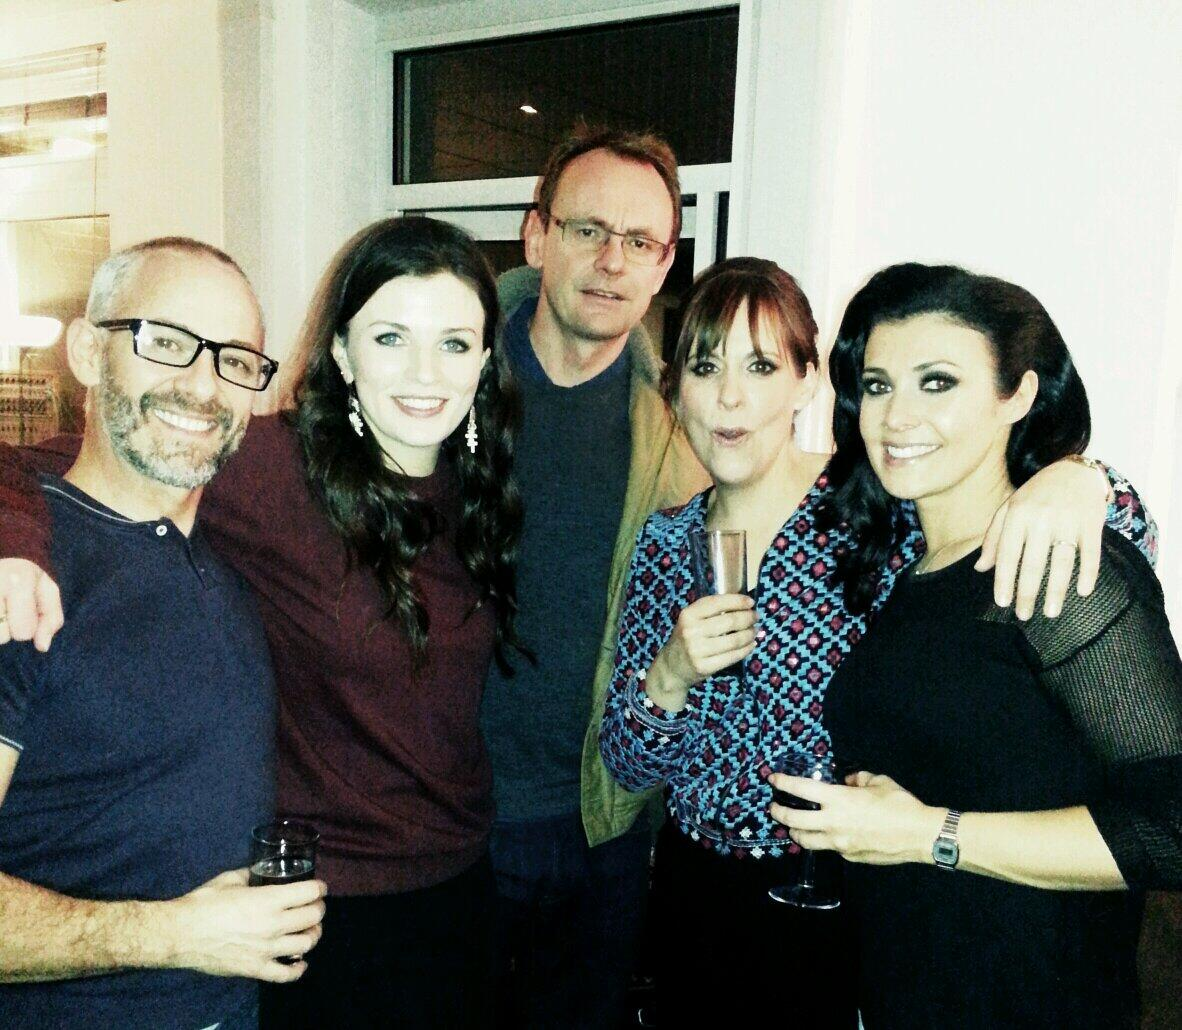 RT @VincentAllenby: @8Outof10Cats_TV Aisling Bea, Sean Lock, lovely Mel Giedroyic & @msm4rsh hair @VincentAllenby @trevorsorbie fab time☆ h…